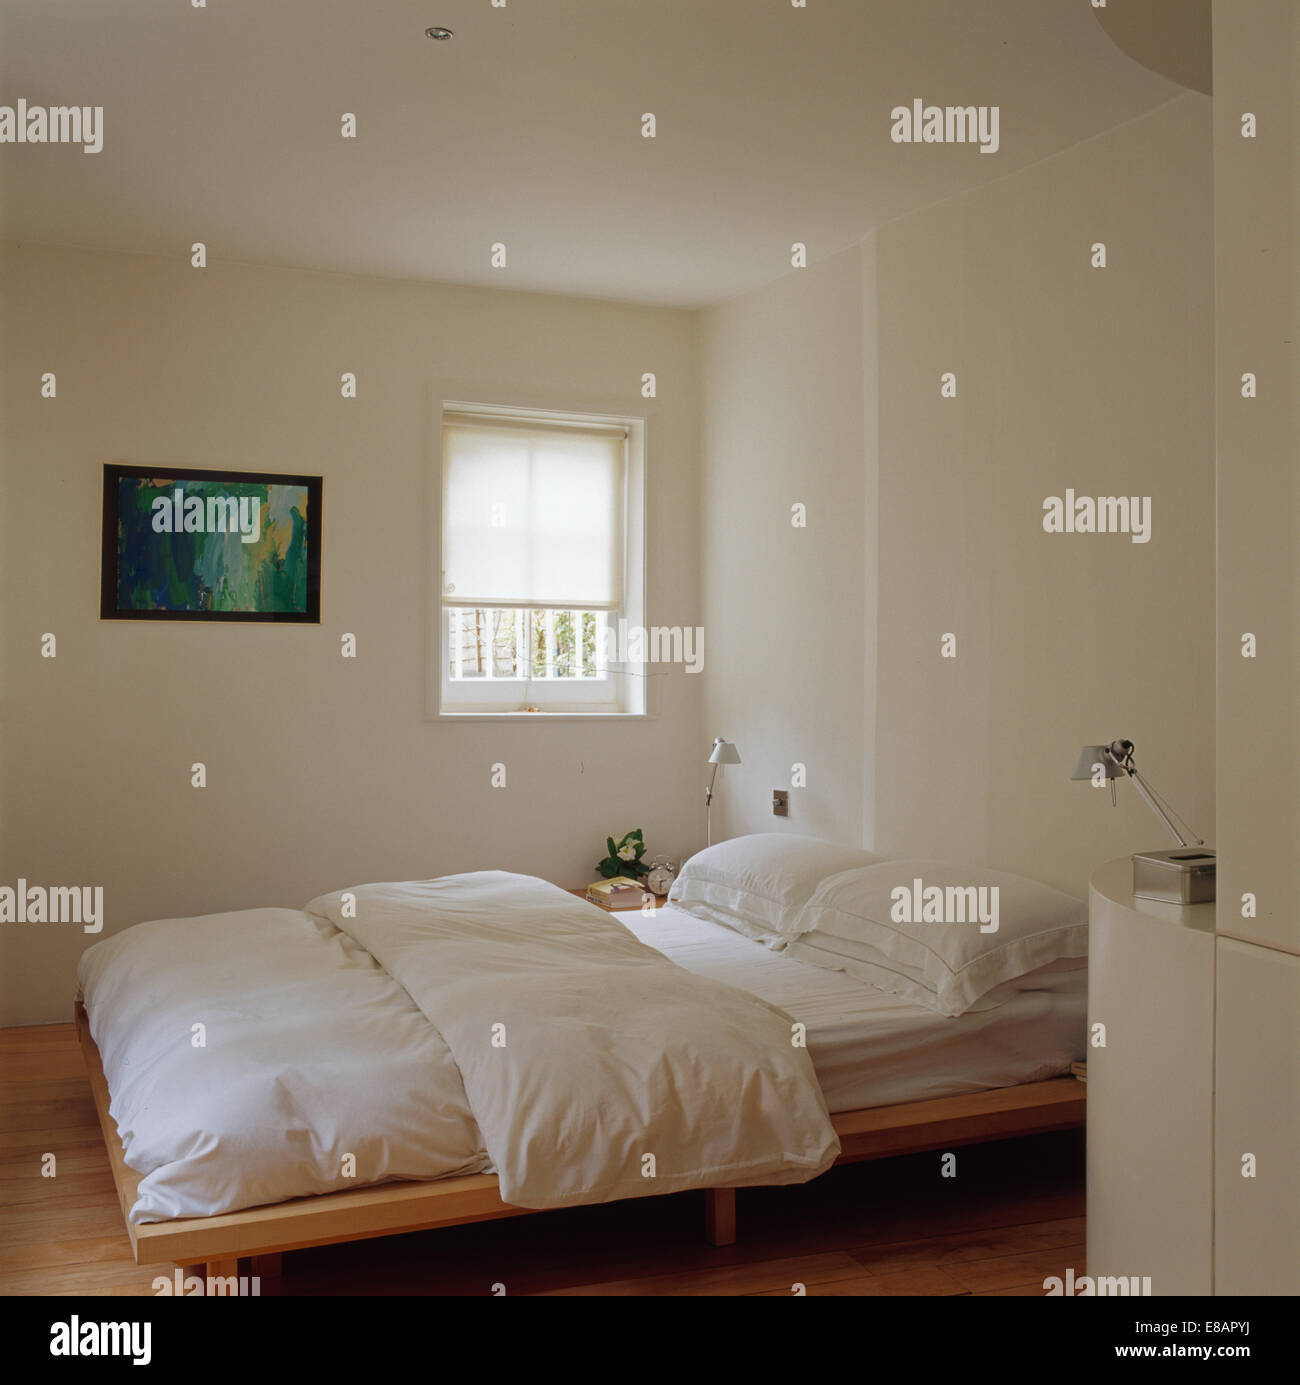 Plain white quilt and pillows on simple wooden bed in modern white ... : plain white quilt - Adamdwight.com